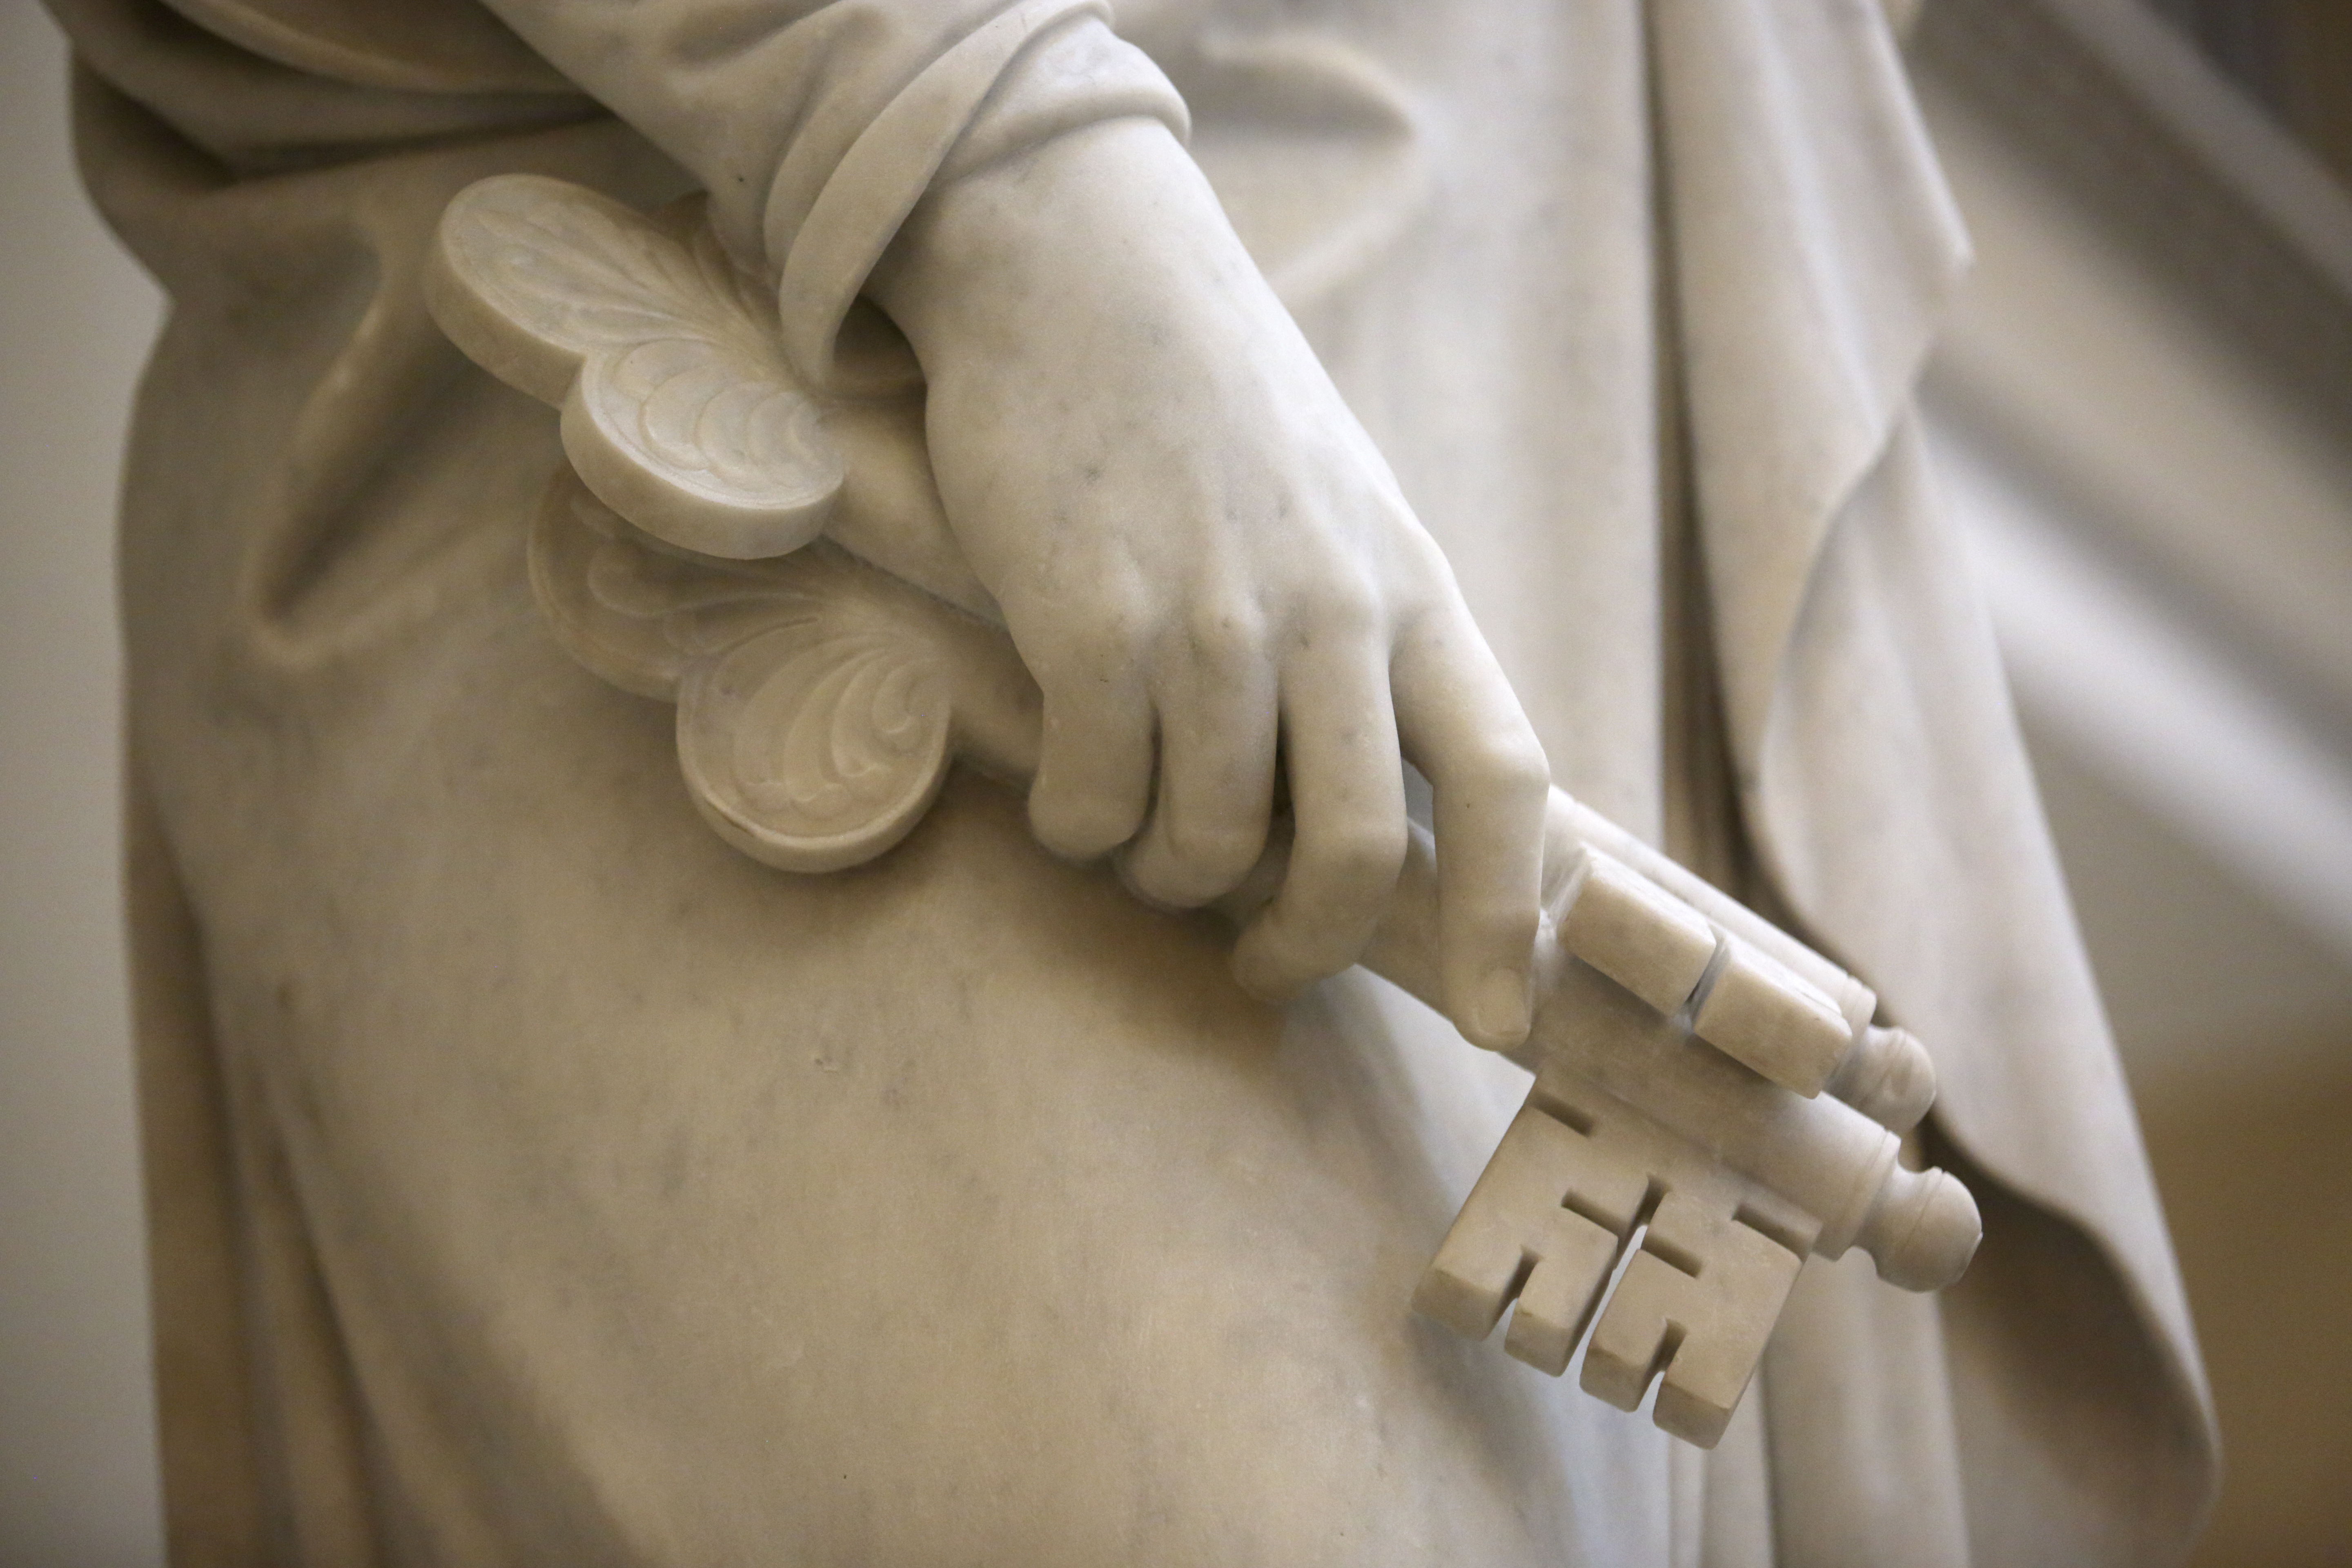 Bertel Thorvaldsen's statue of Peter, one of the 12 apostles, holds keys at the Church of Our Lady in Copenhagen, Denmark, on Tuesday, Nov. 13, 2018. The 12 apostles statues were carved out of Carrara marble between 1829 and 1848. Replicas of the statues are now on display in the Rome Temple visitors' center in Italy.